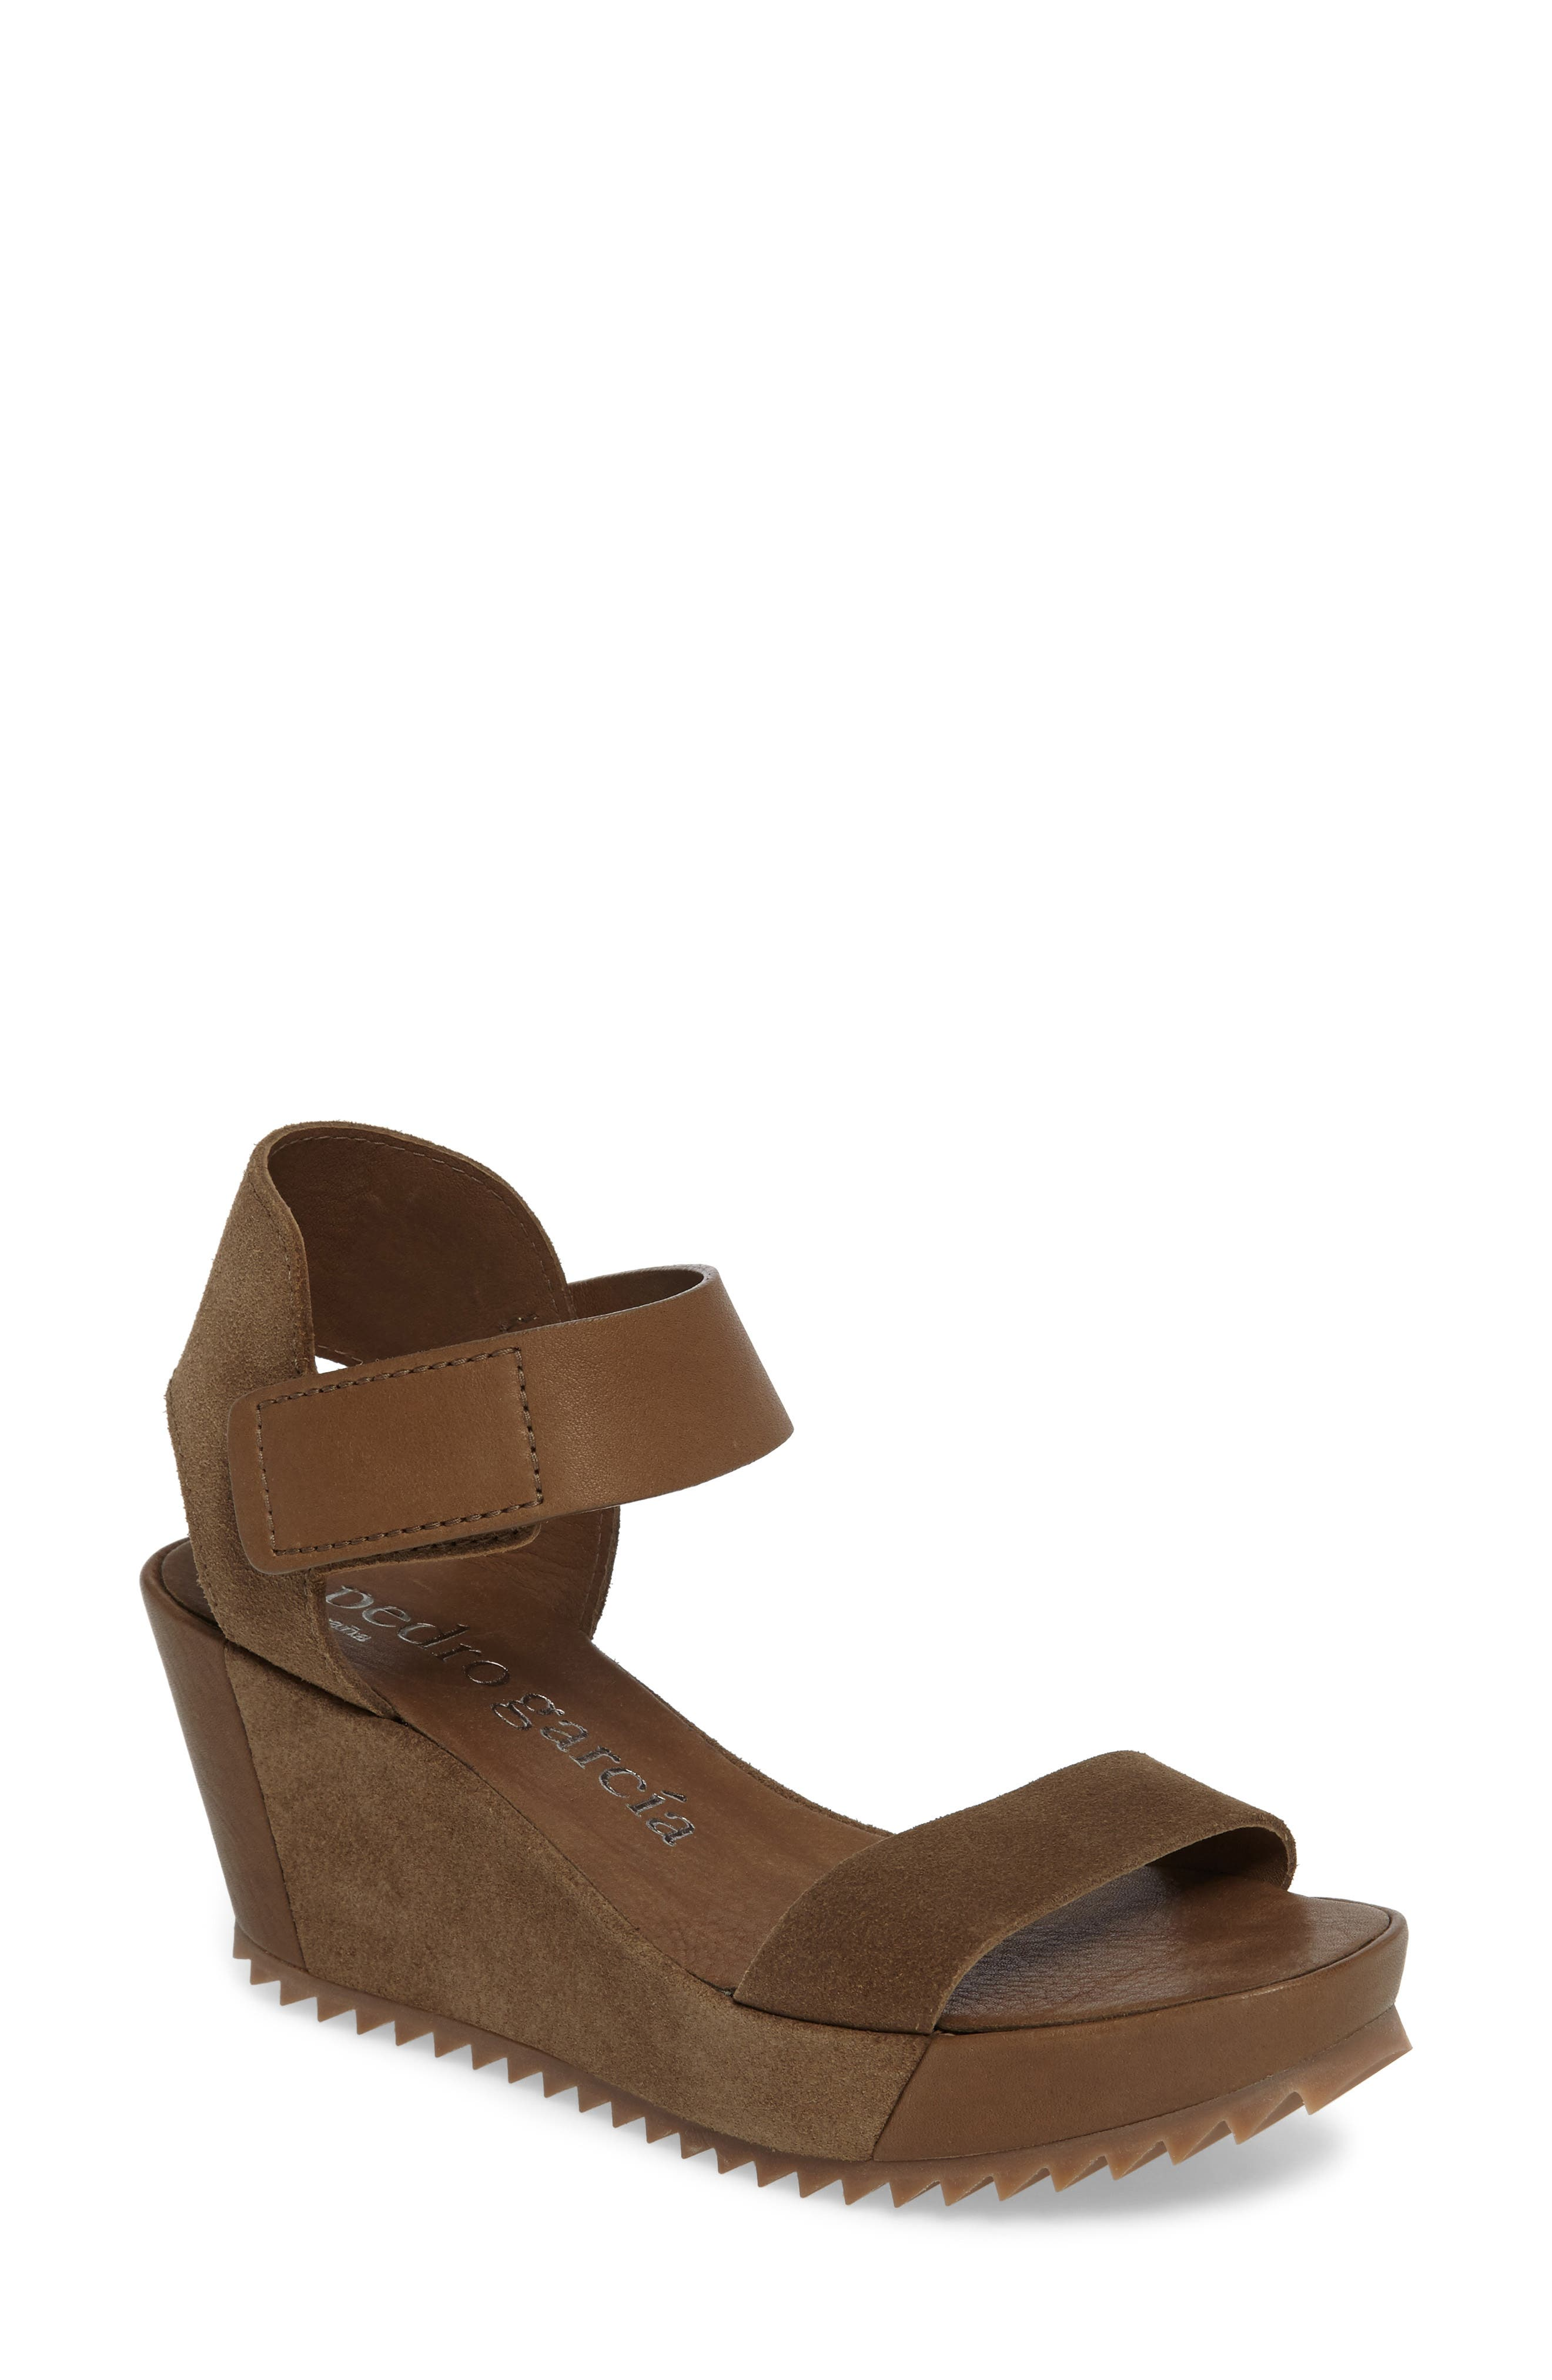 Francesca Wedge Sandal,                             Main thumbnail 1, color,                             250